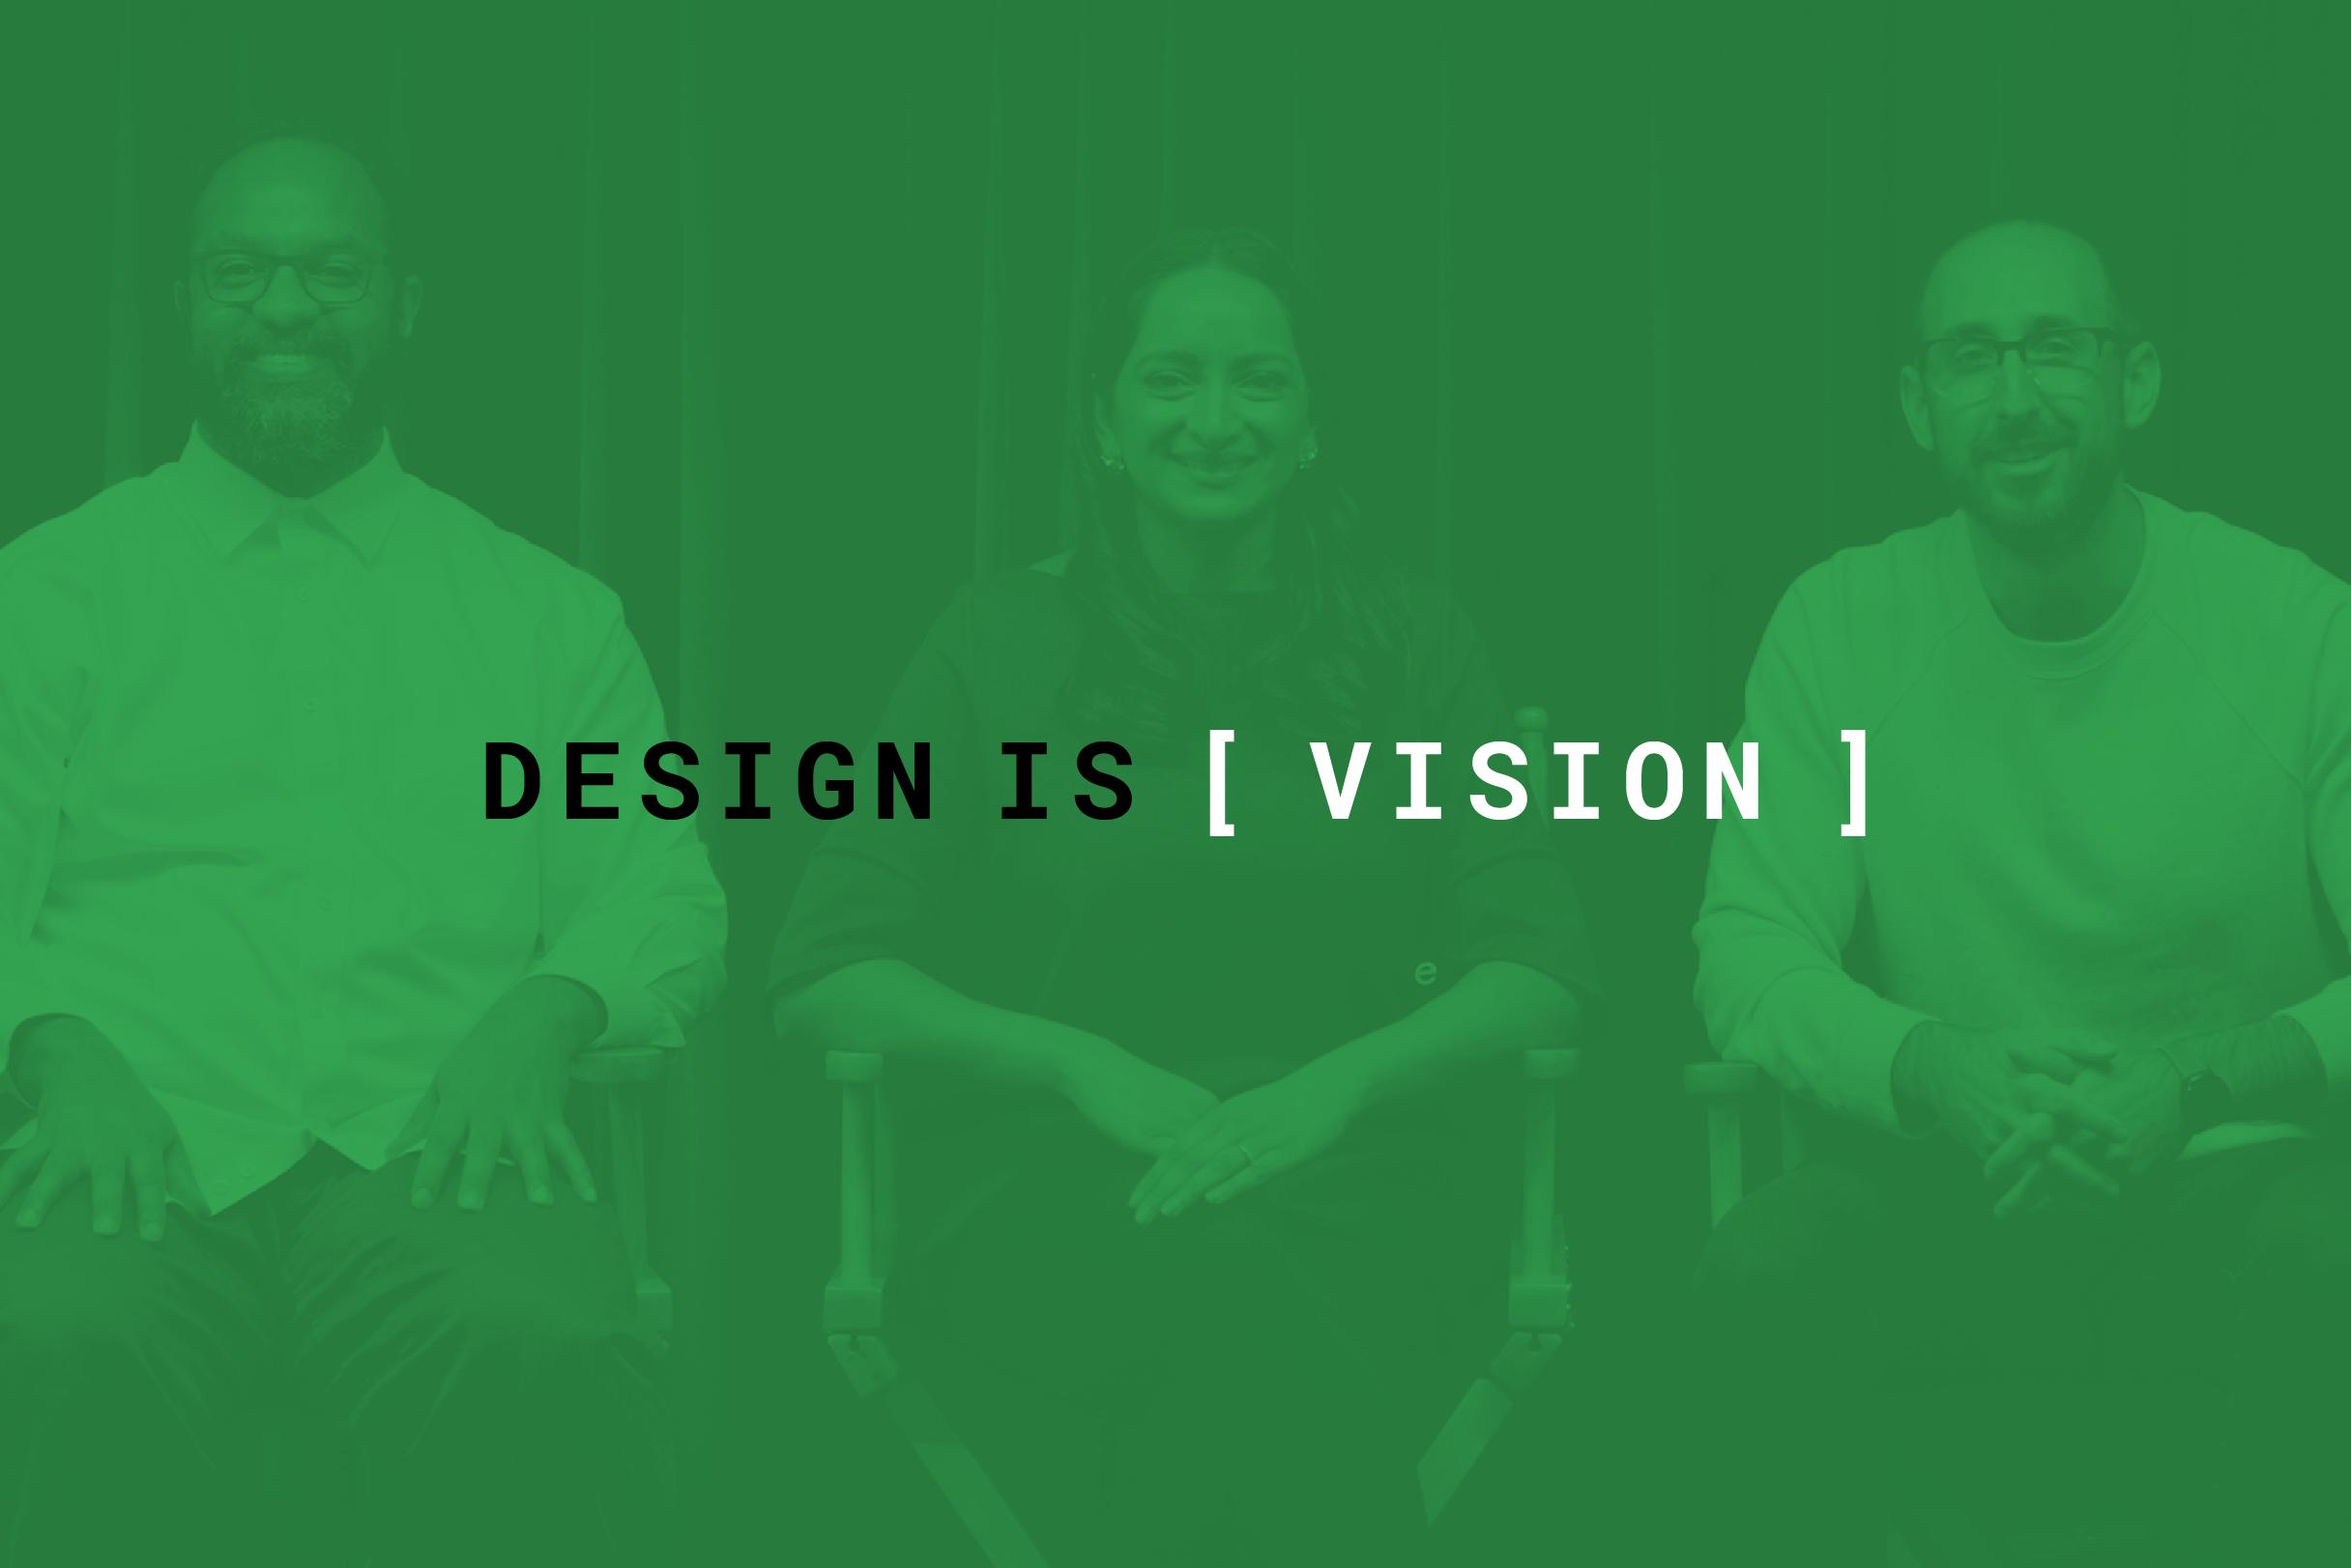 design_is_vision_3x2.png